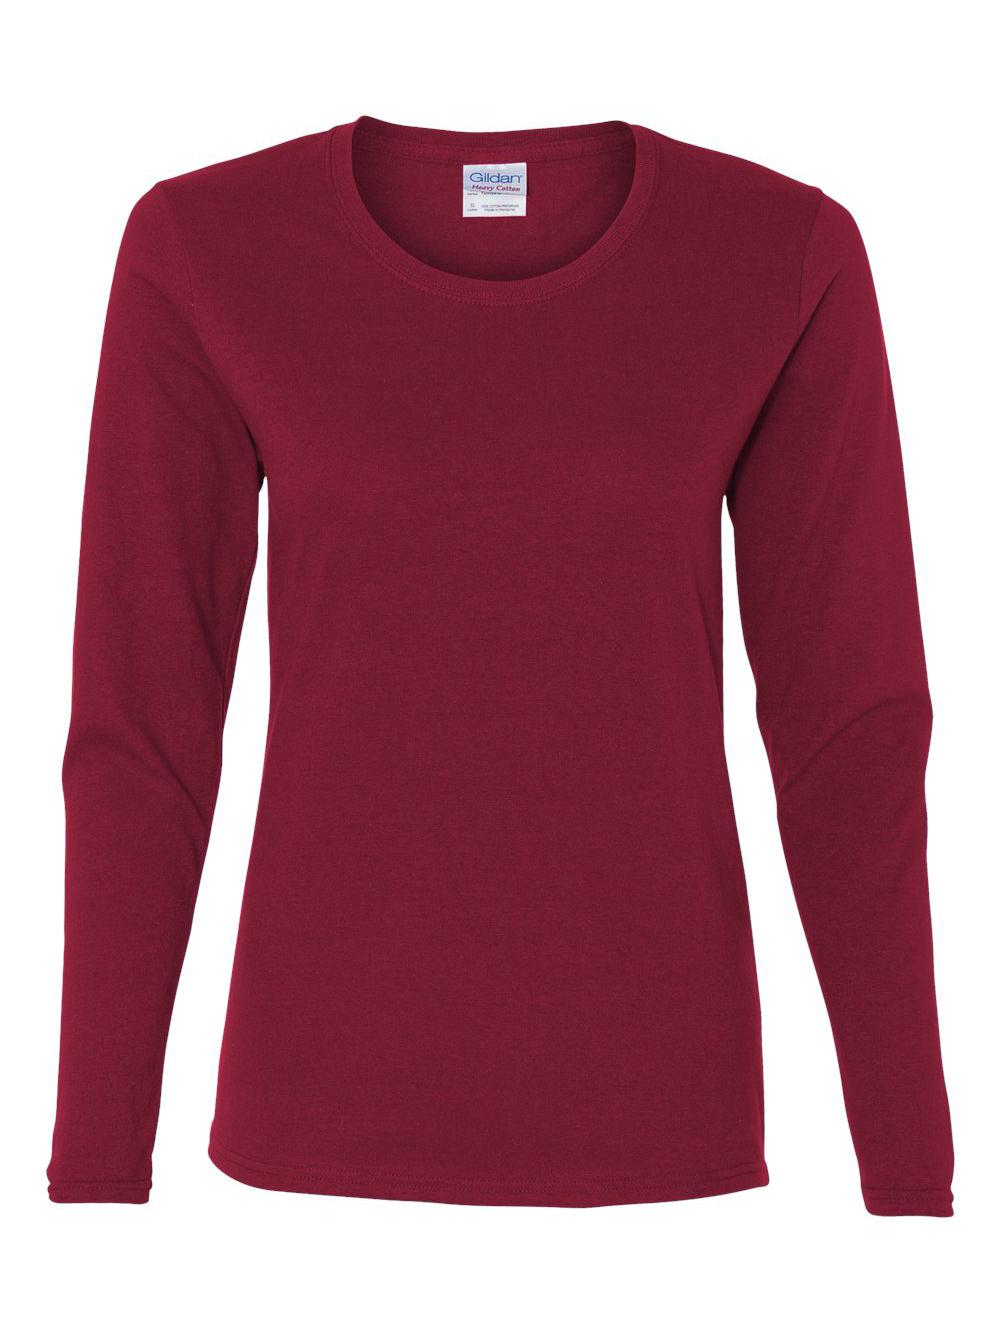 Gildan-Heavy-Cotton-Women-039-s-Long-Sleeve-T-Shirt-5400L thumbnail 6